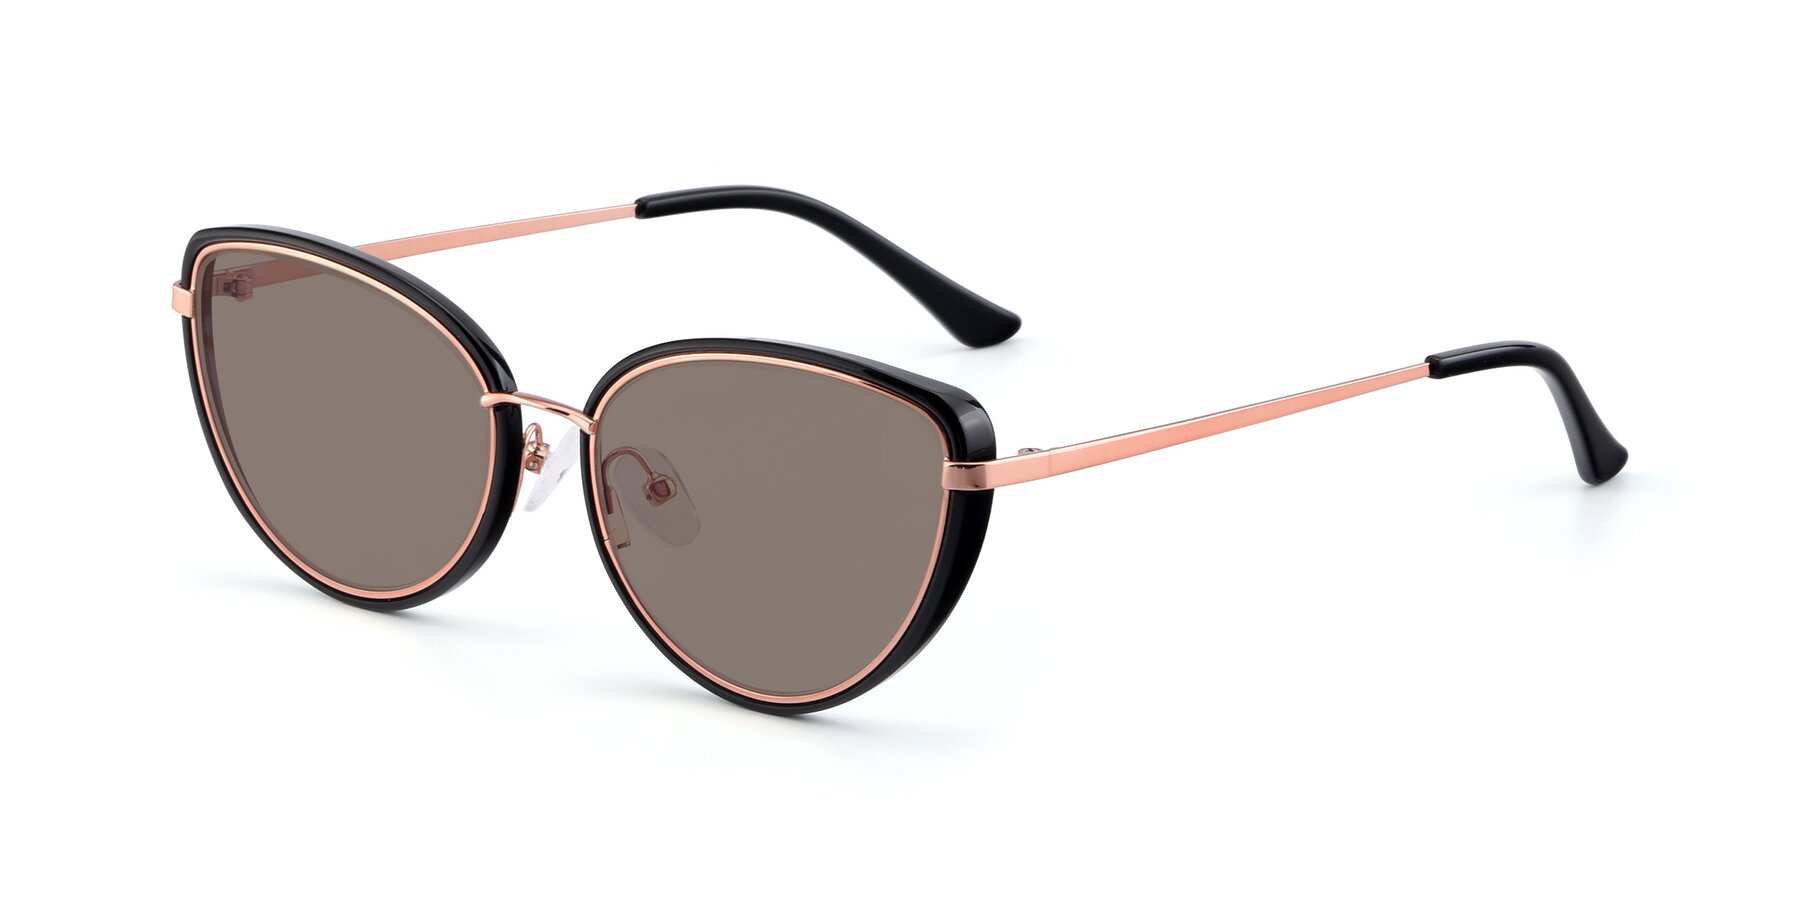 Angle of 17706 in Black-Rose Gold with Medium Brown Tinted Lenses